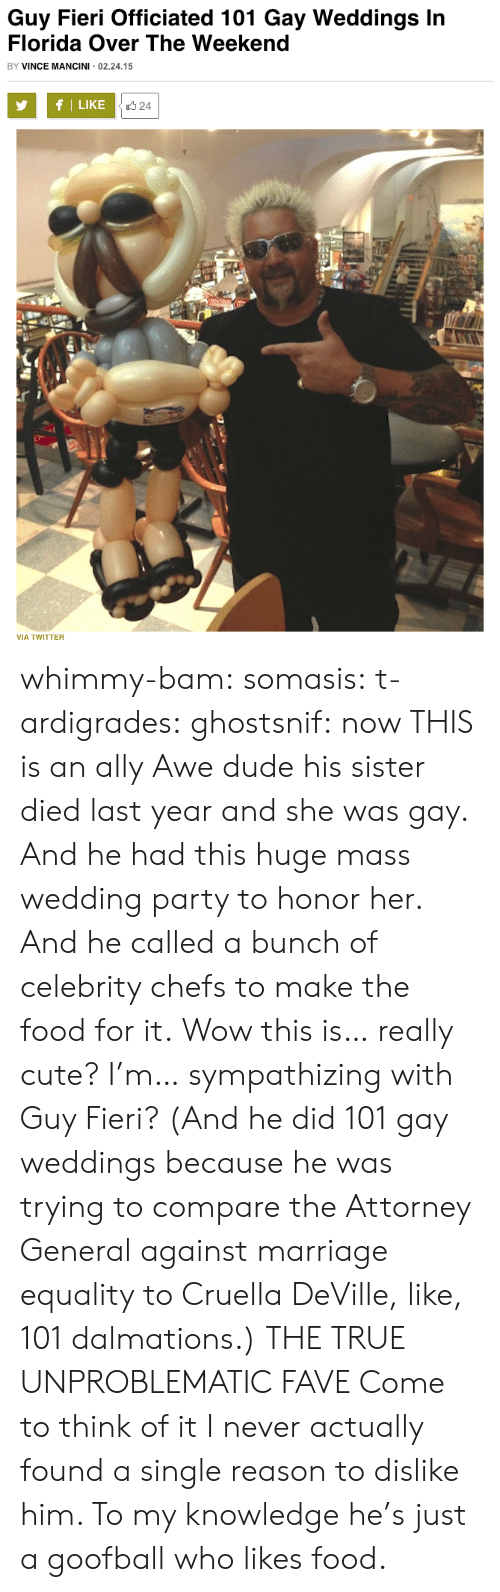 Cute, Dude, and Food: Guy Fieri Officiated 101 Gay Weddings In  Florida Over The Weekend  BY VINCE MANCINI 02.24.15  fl LIKE  24  VIA TWITTER whimmy-bam: somasis:  t-ardigrades:  ghostsnif:  now THIS is an ally  Awe dude his sister died last year and she was gay. And he had this huge mass wedding party to honor her. And he called a bunch of celebrity chefs to make the food for it. Wow this is… really cute? I'm… sympathizing with Guy Fieri? (And he did 101 gay weddings because he was trying to compare the Attorney General against marriage equality to Cruella DeVille, like, 101 dalmations.)  THE TRUE UNPROBLEMATIC FAVE  Come to think of it I never actually found a single reason to dislike him. To my knowledge he's just a goofball who likes food.